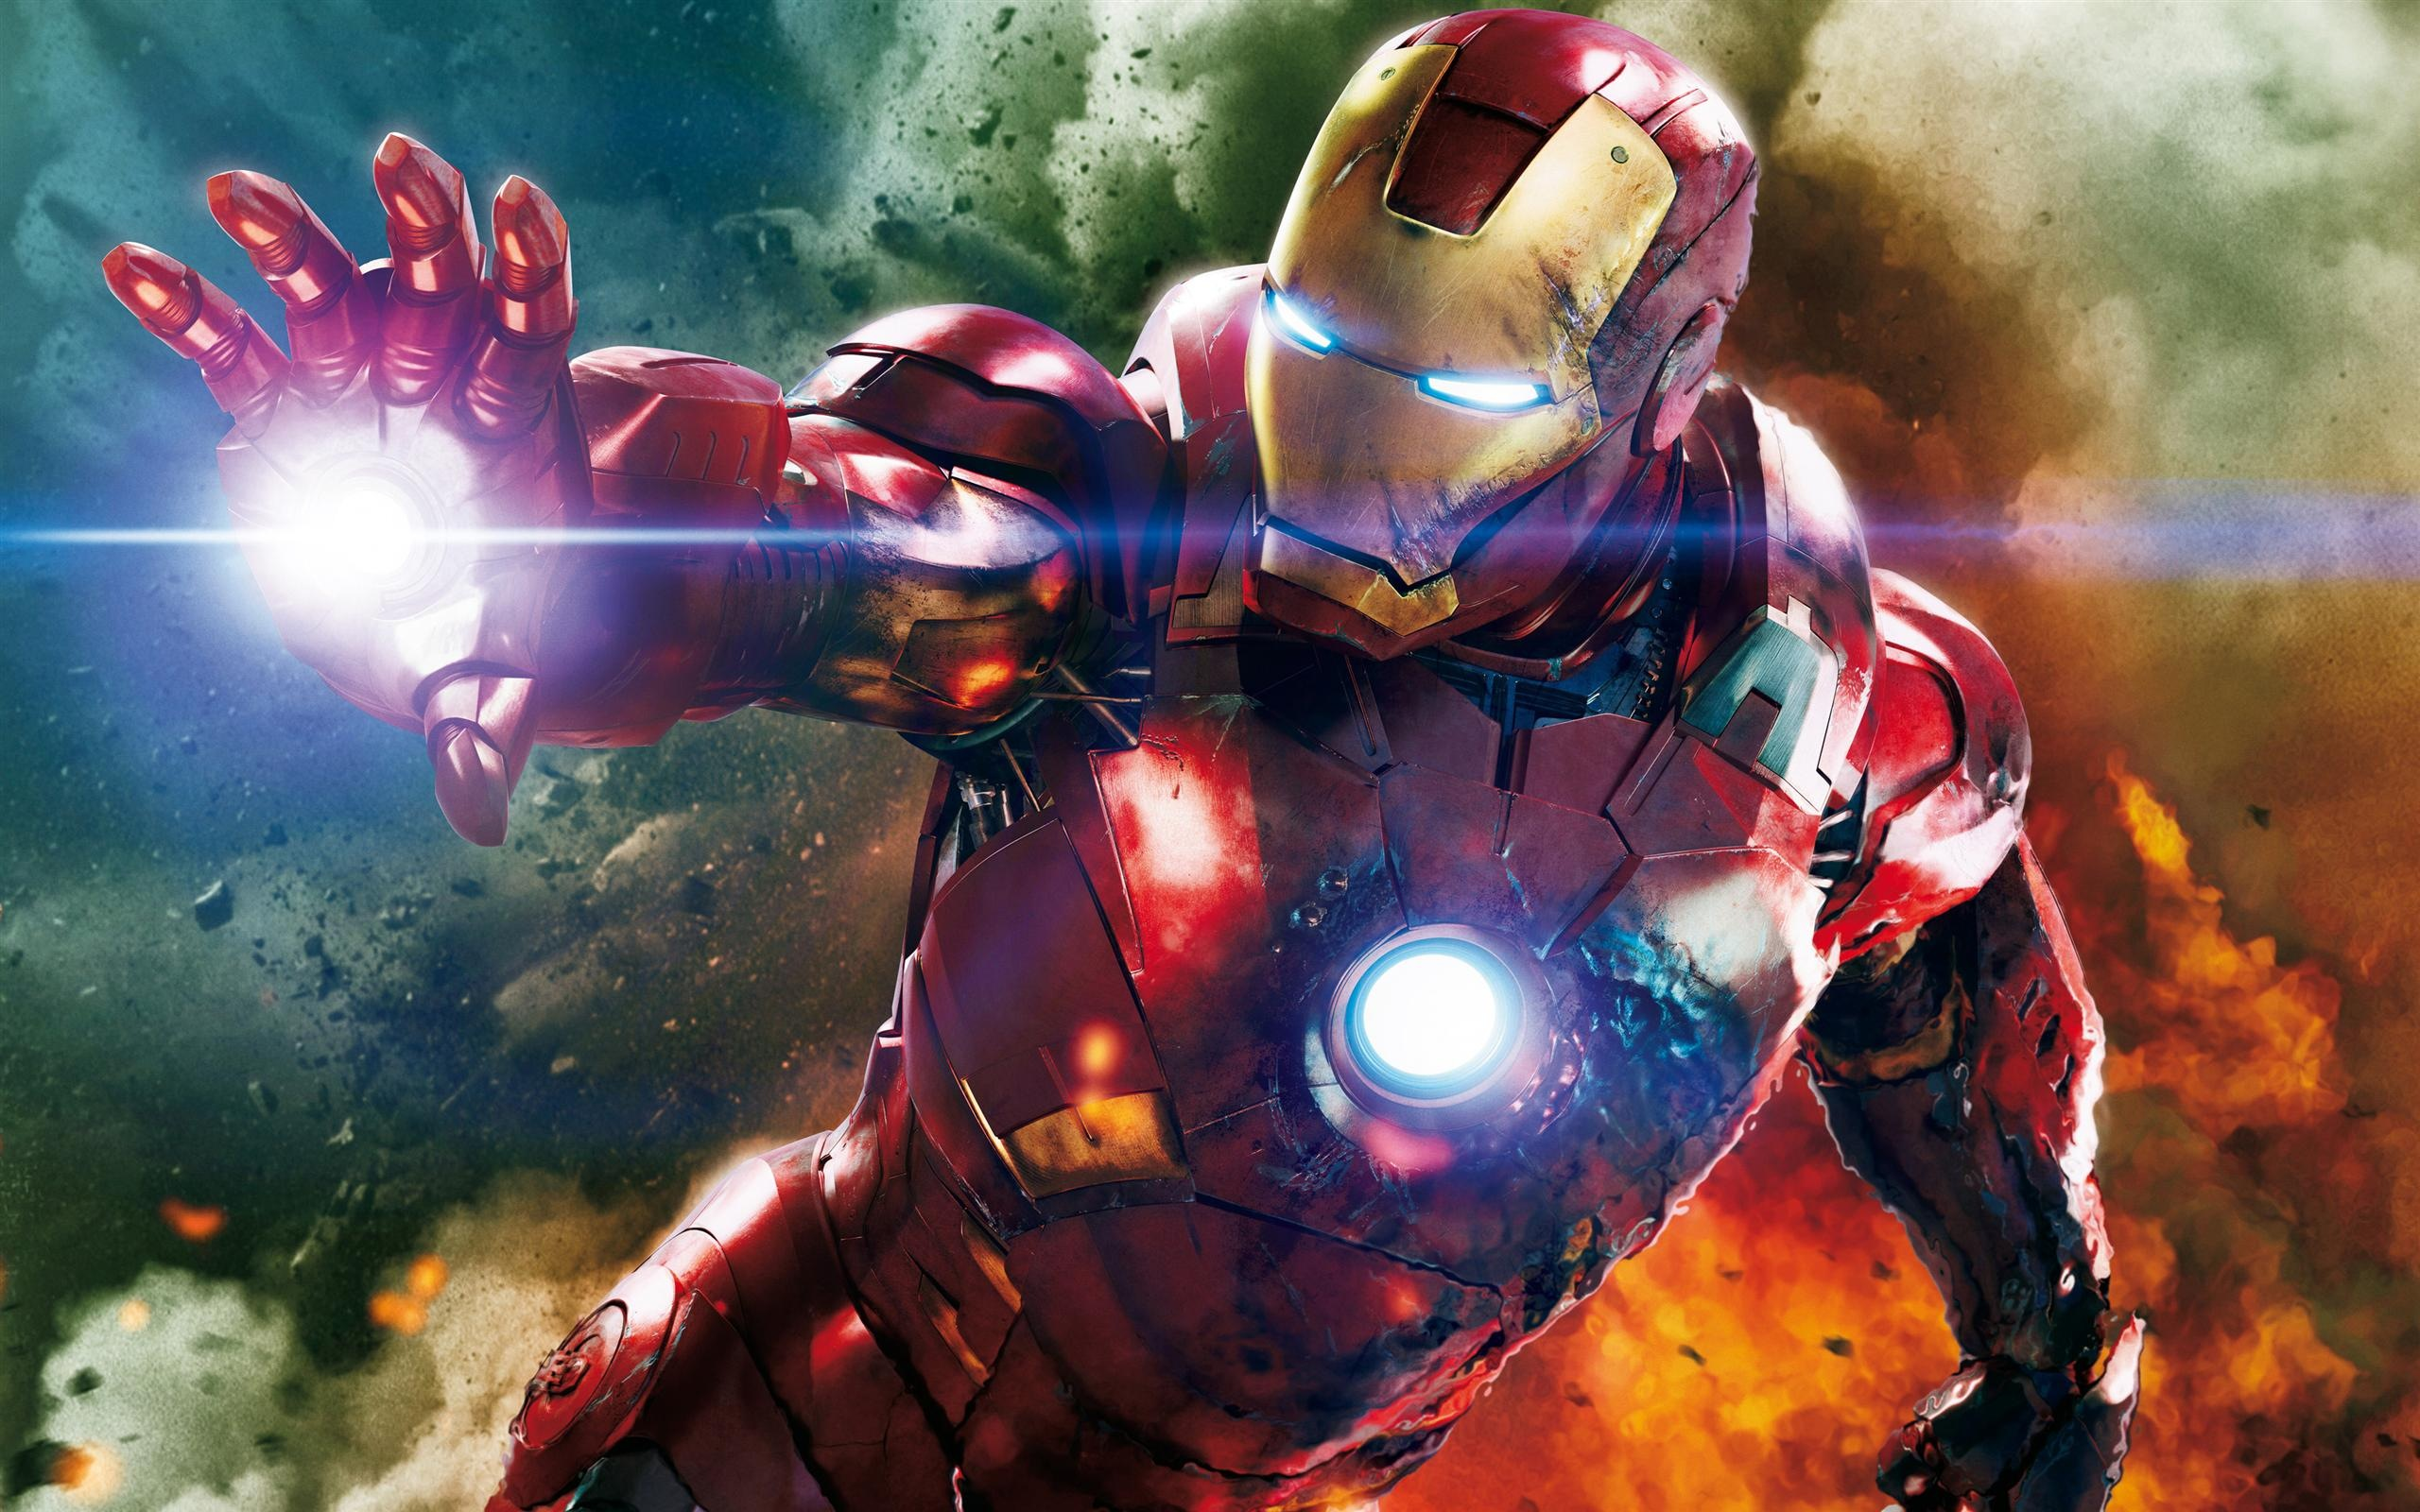 Wallpaper Movie, Top HD Movie Images, #LIV HD